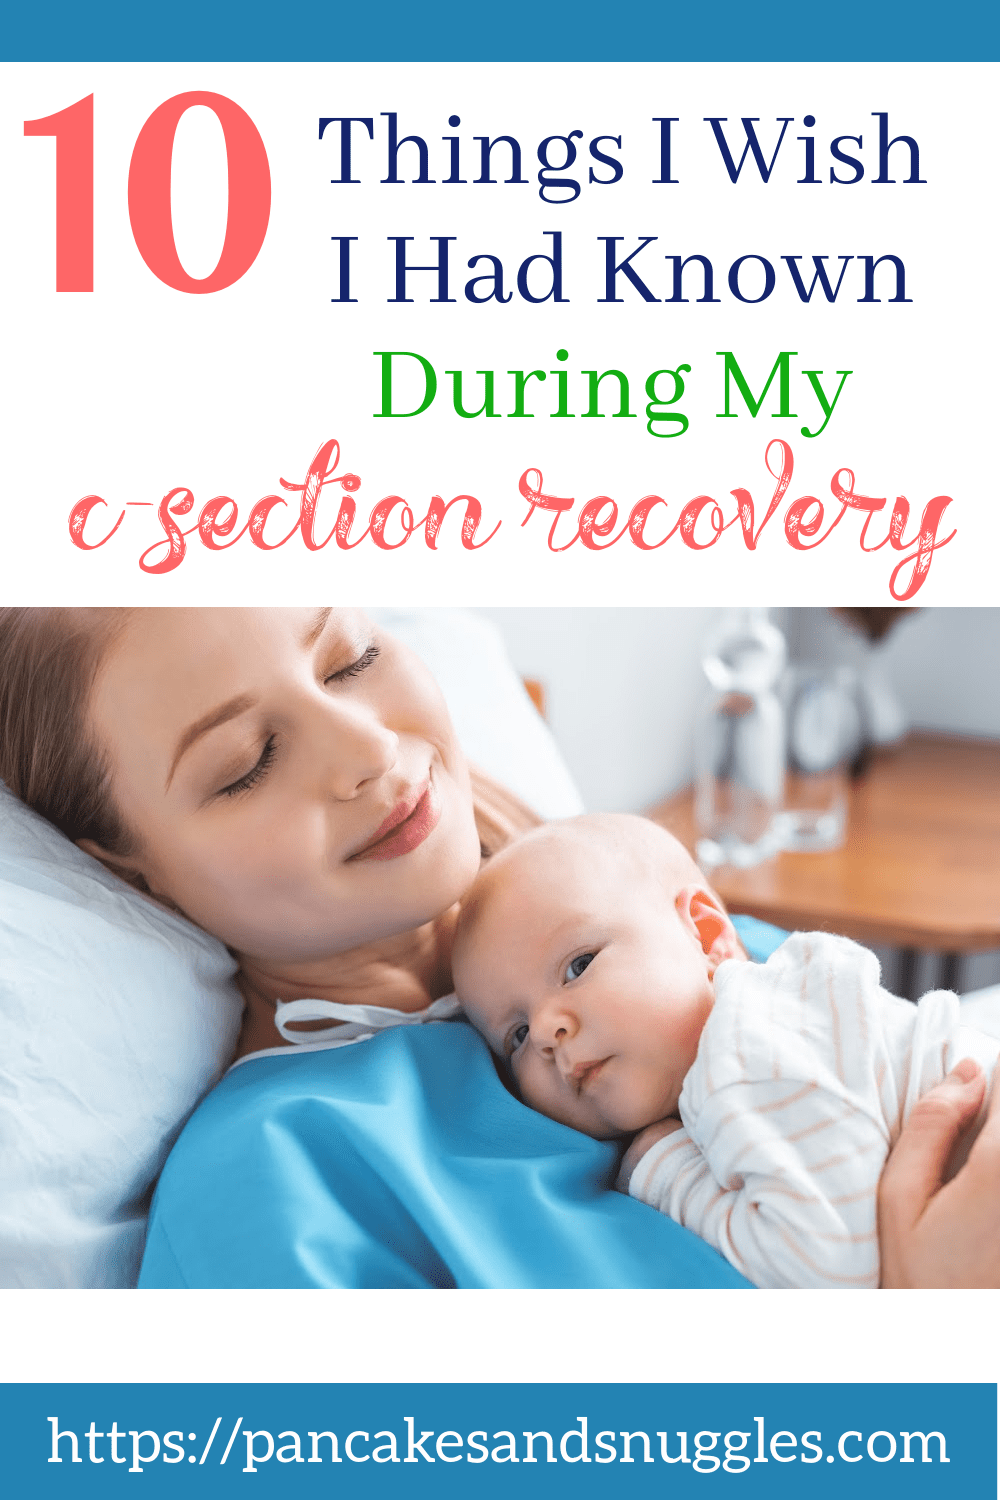 Ten Things I Wish I Had Known During My C-Section Recovery